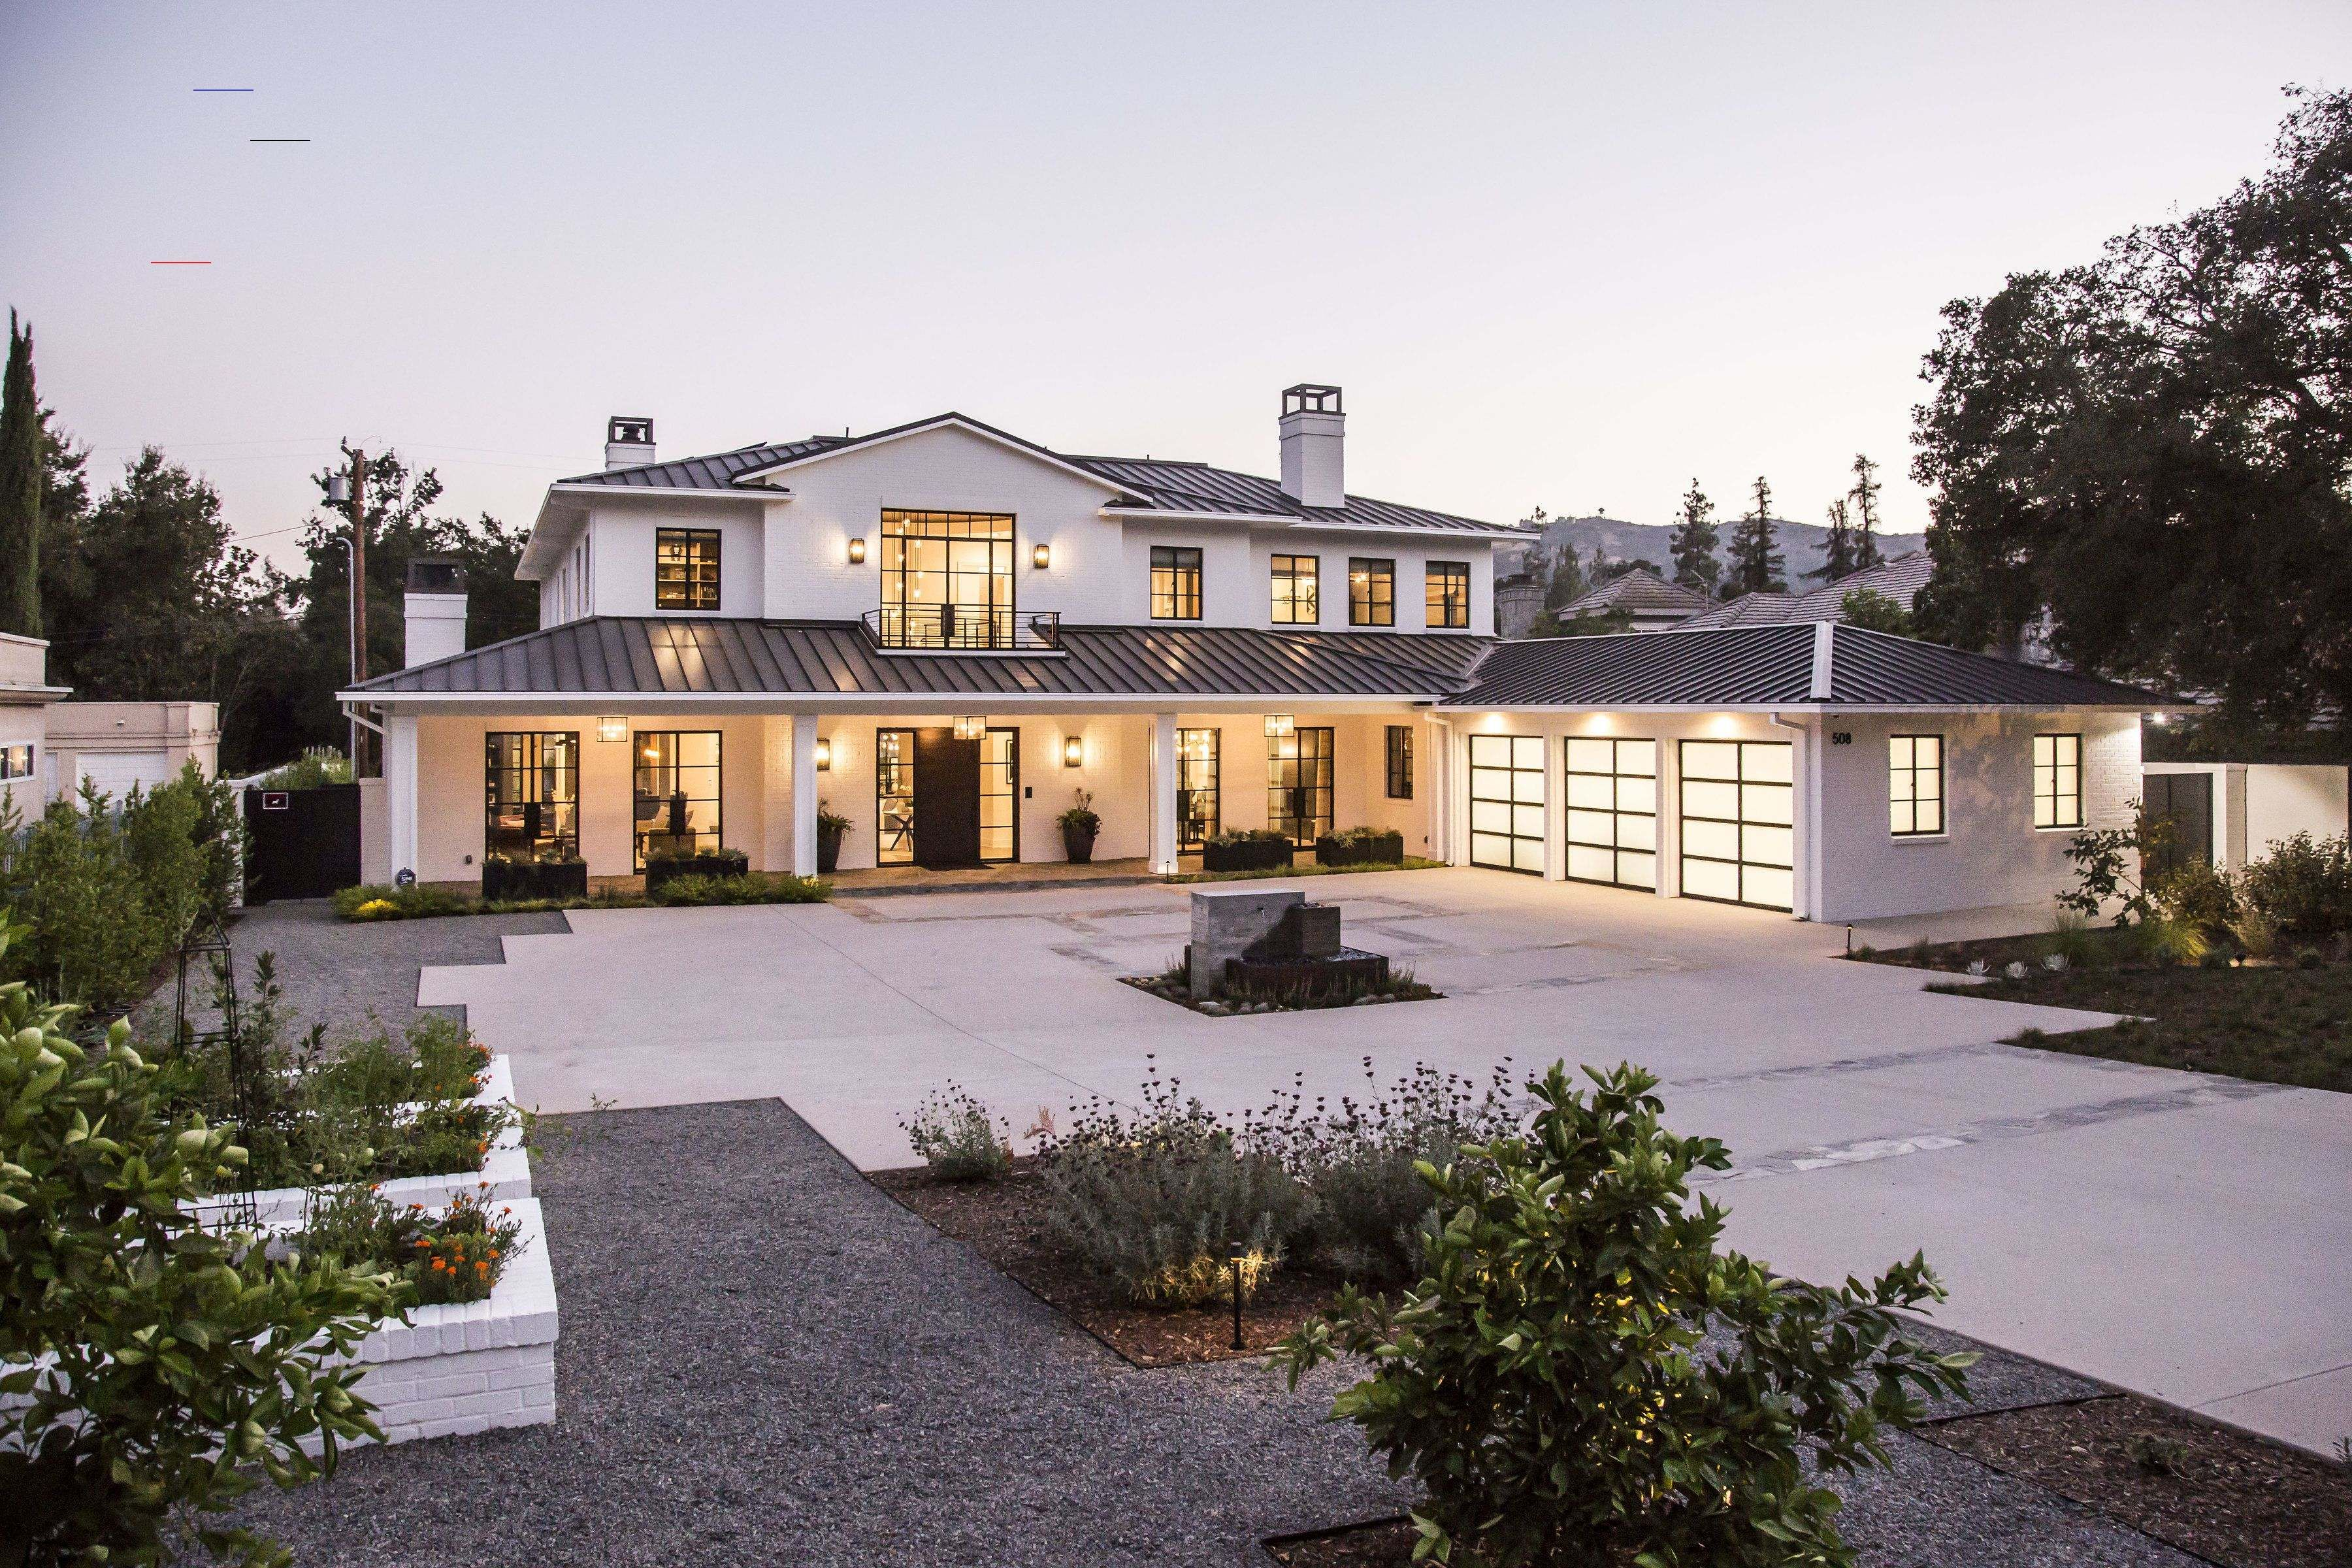 #farmhousestyle - Pasadena Architects – Find the best Architects in Pasadena, Southern California, Los Angeles for your home build or renovation at jamescoane.com....